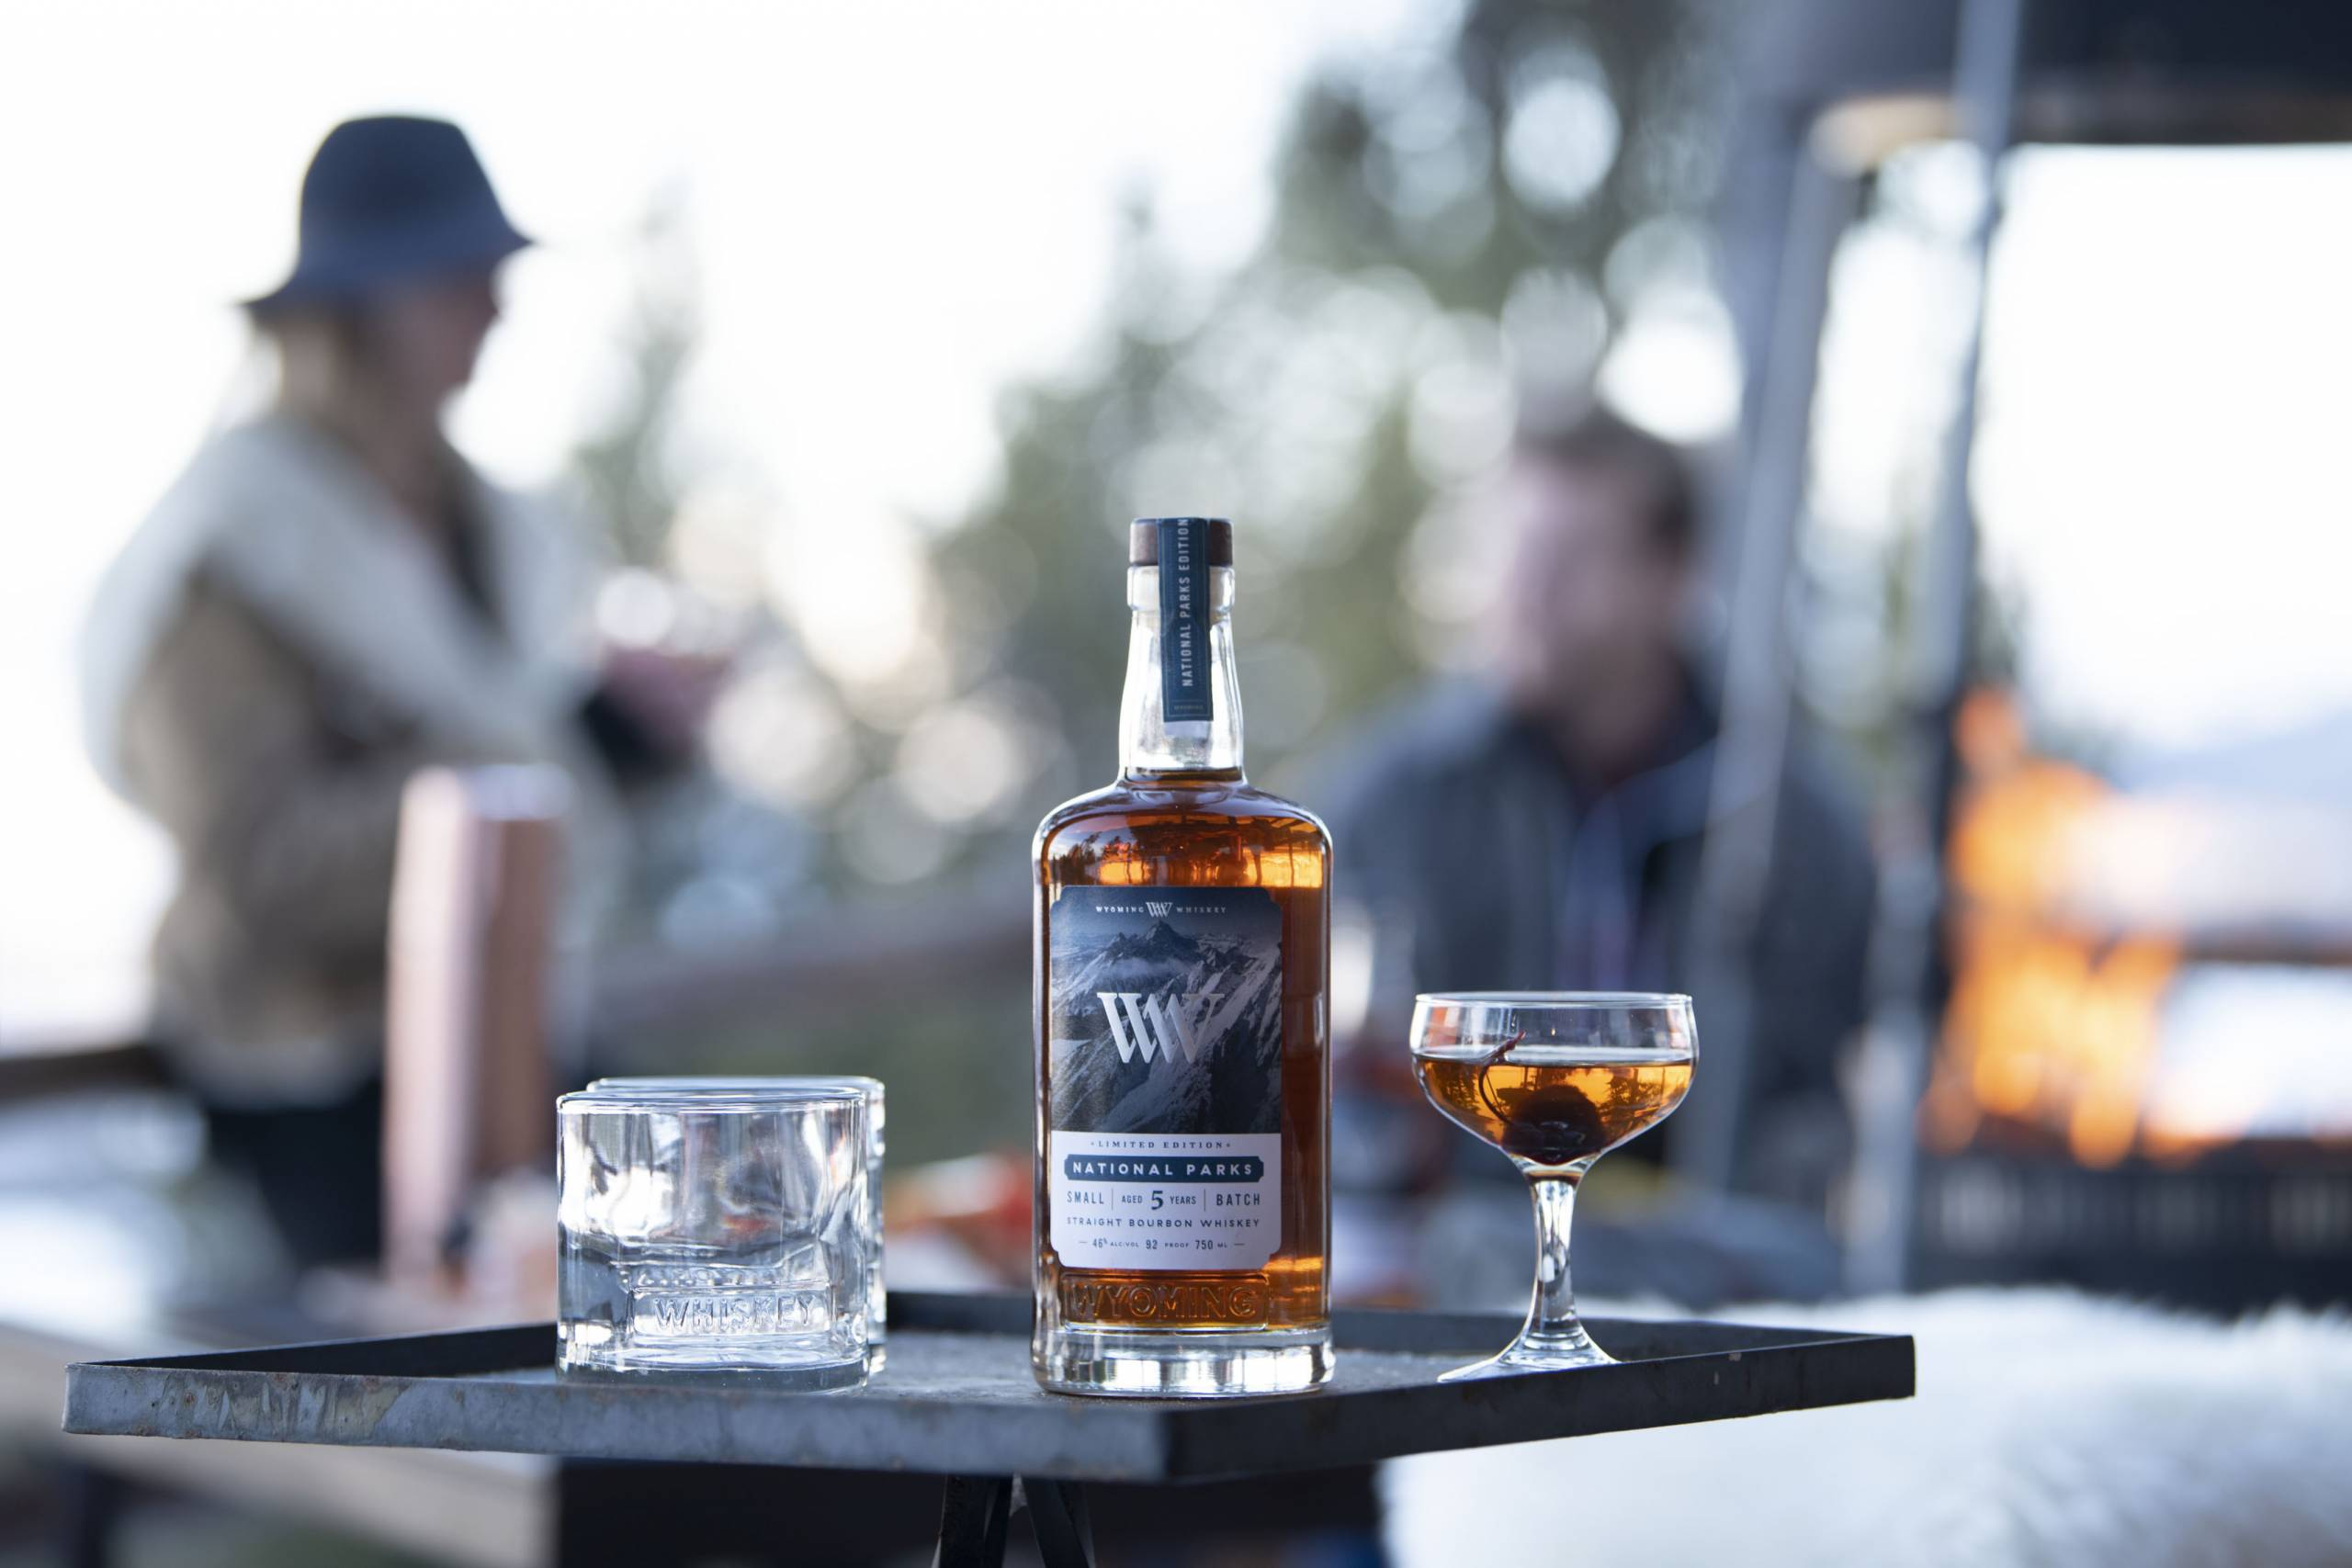 Wyoming Whiskey National Parks Limited Edition label